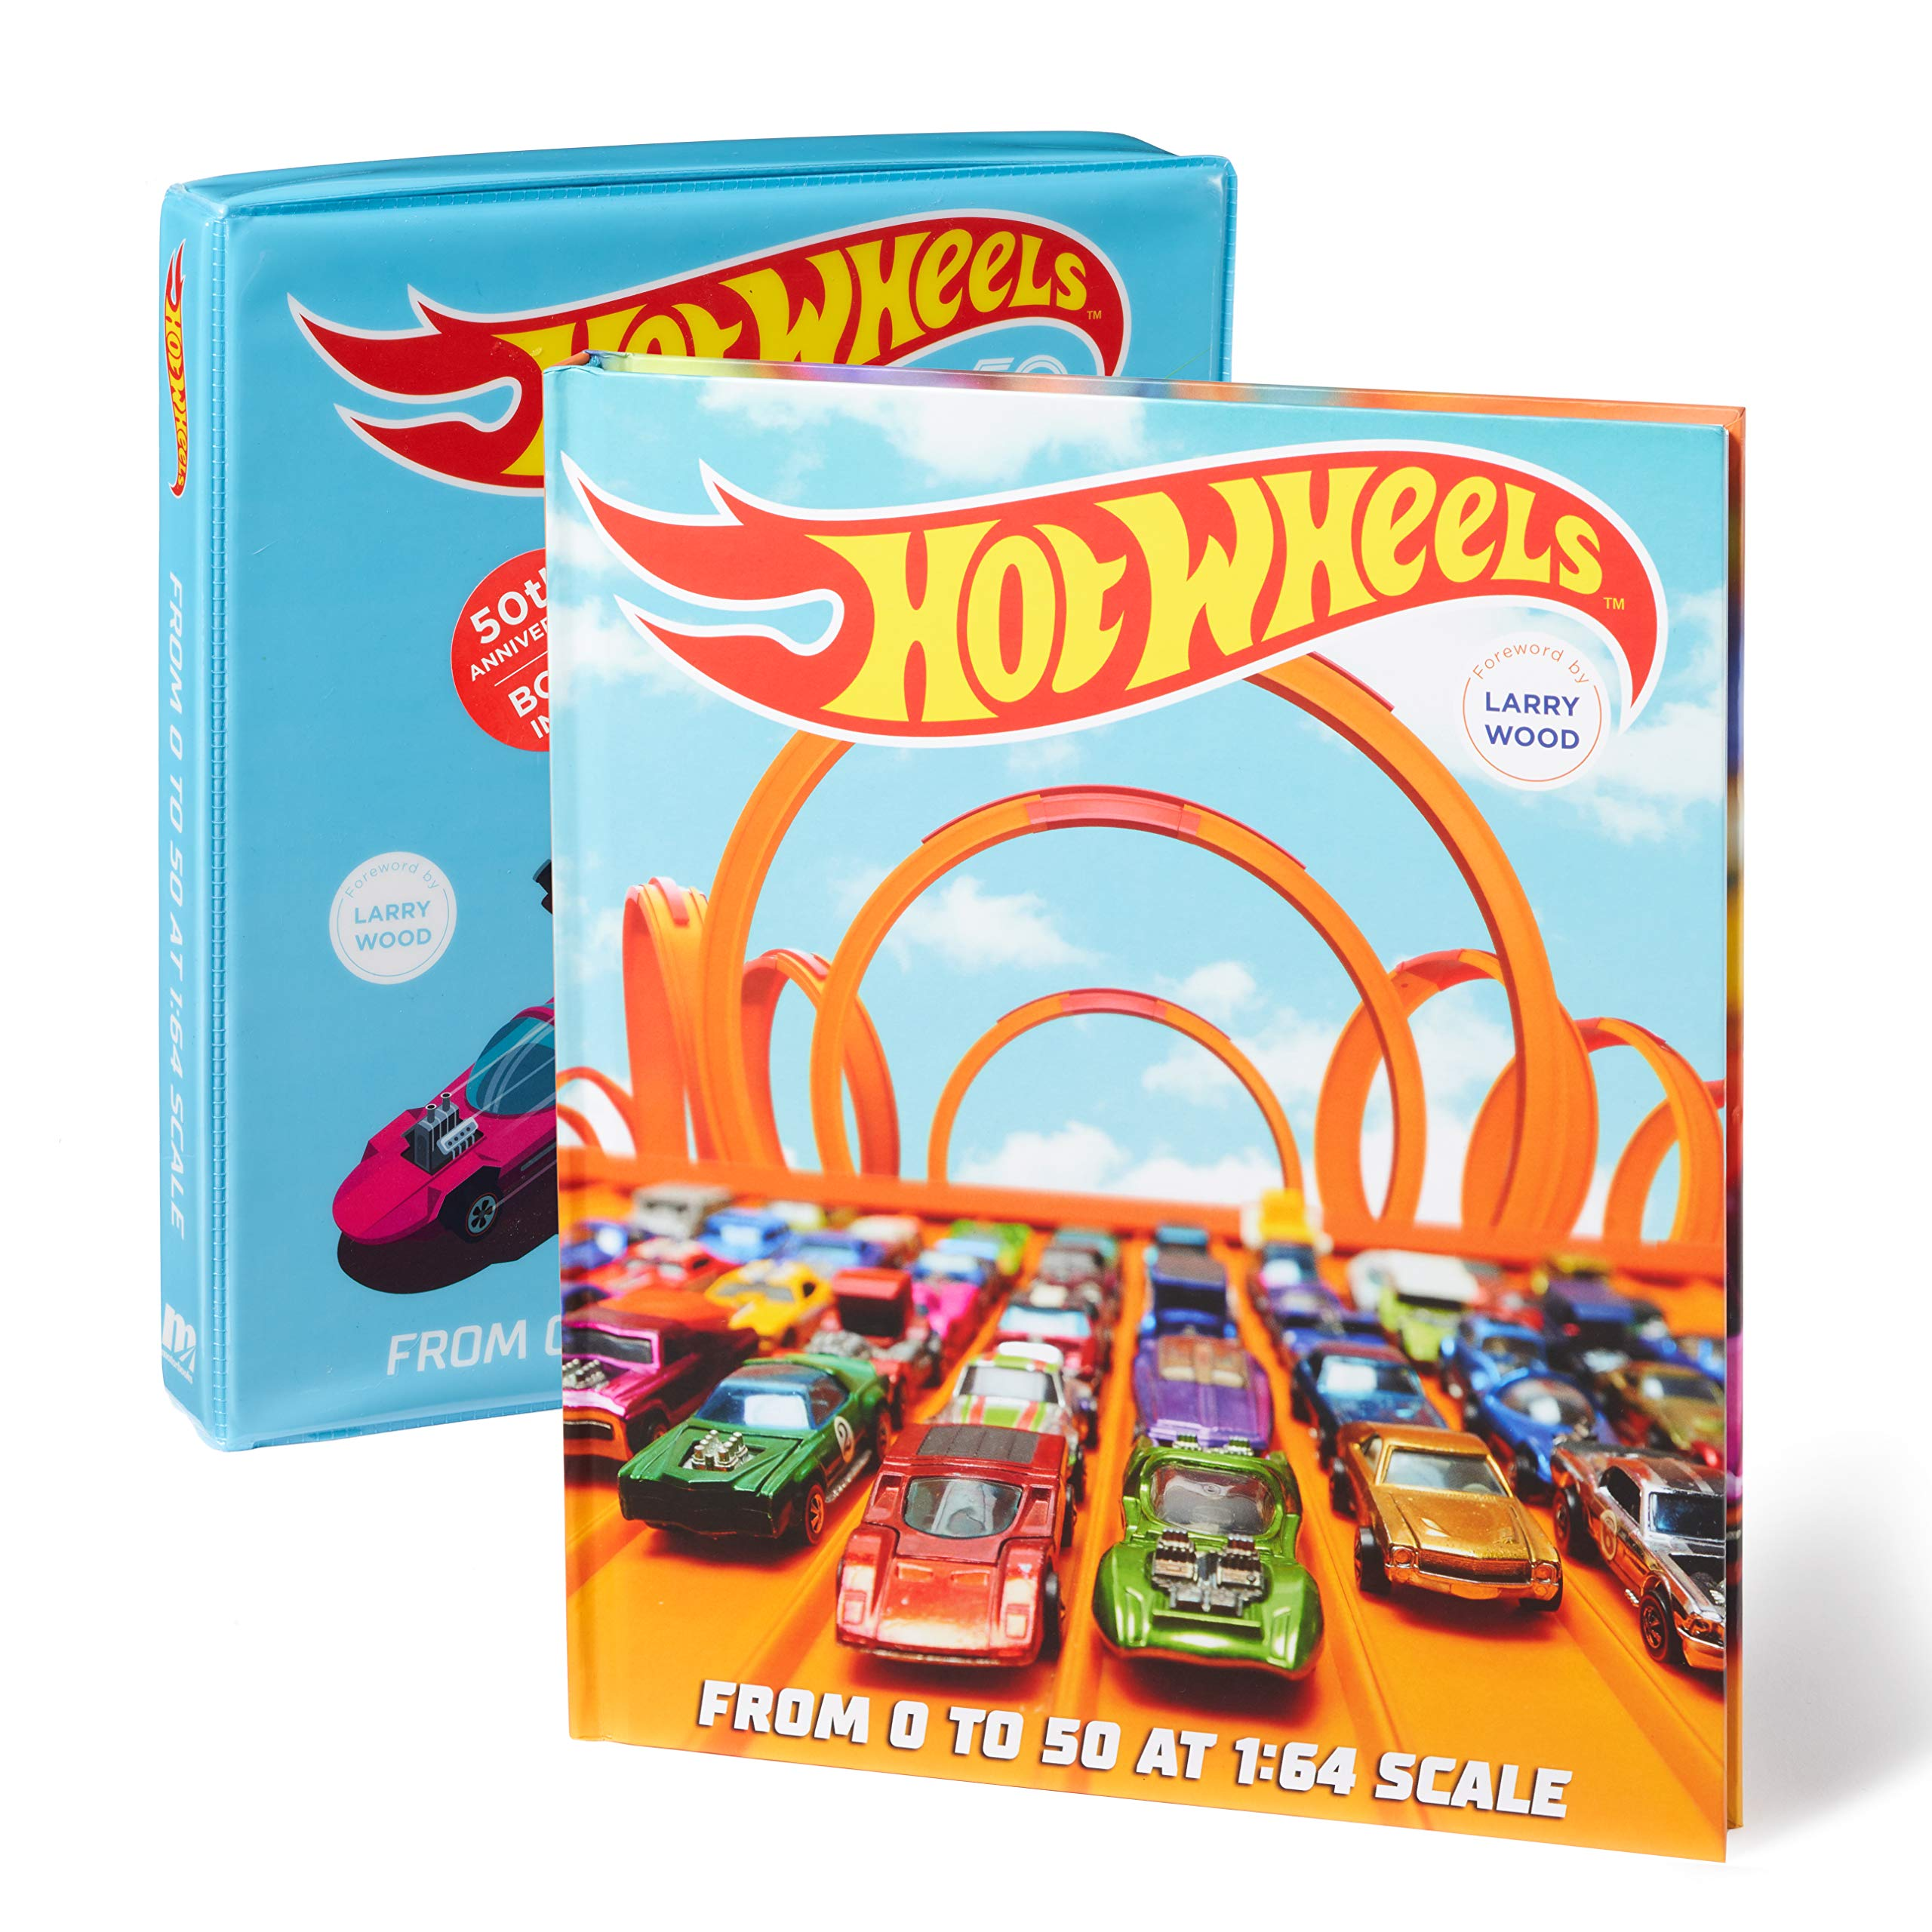 348d26268d8e9 Hot Wheels: From 0 to 50 at 1:64 Scale: Kris Palmer, Larry Wood ...